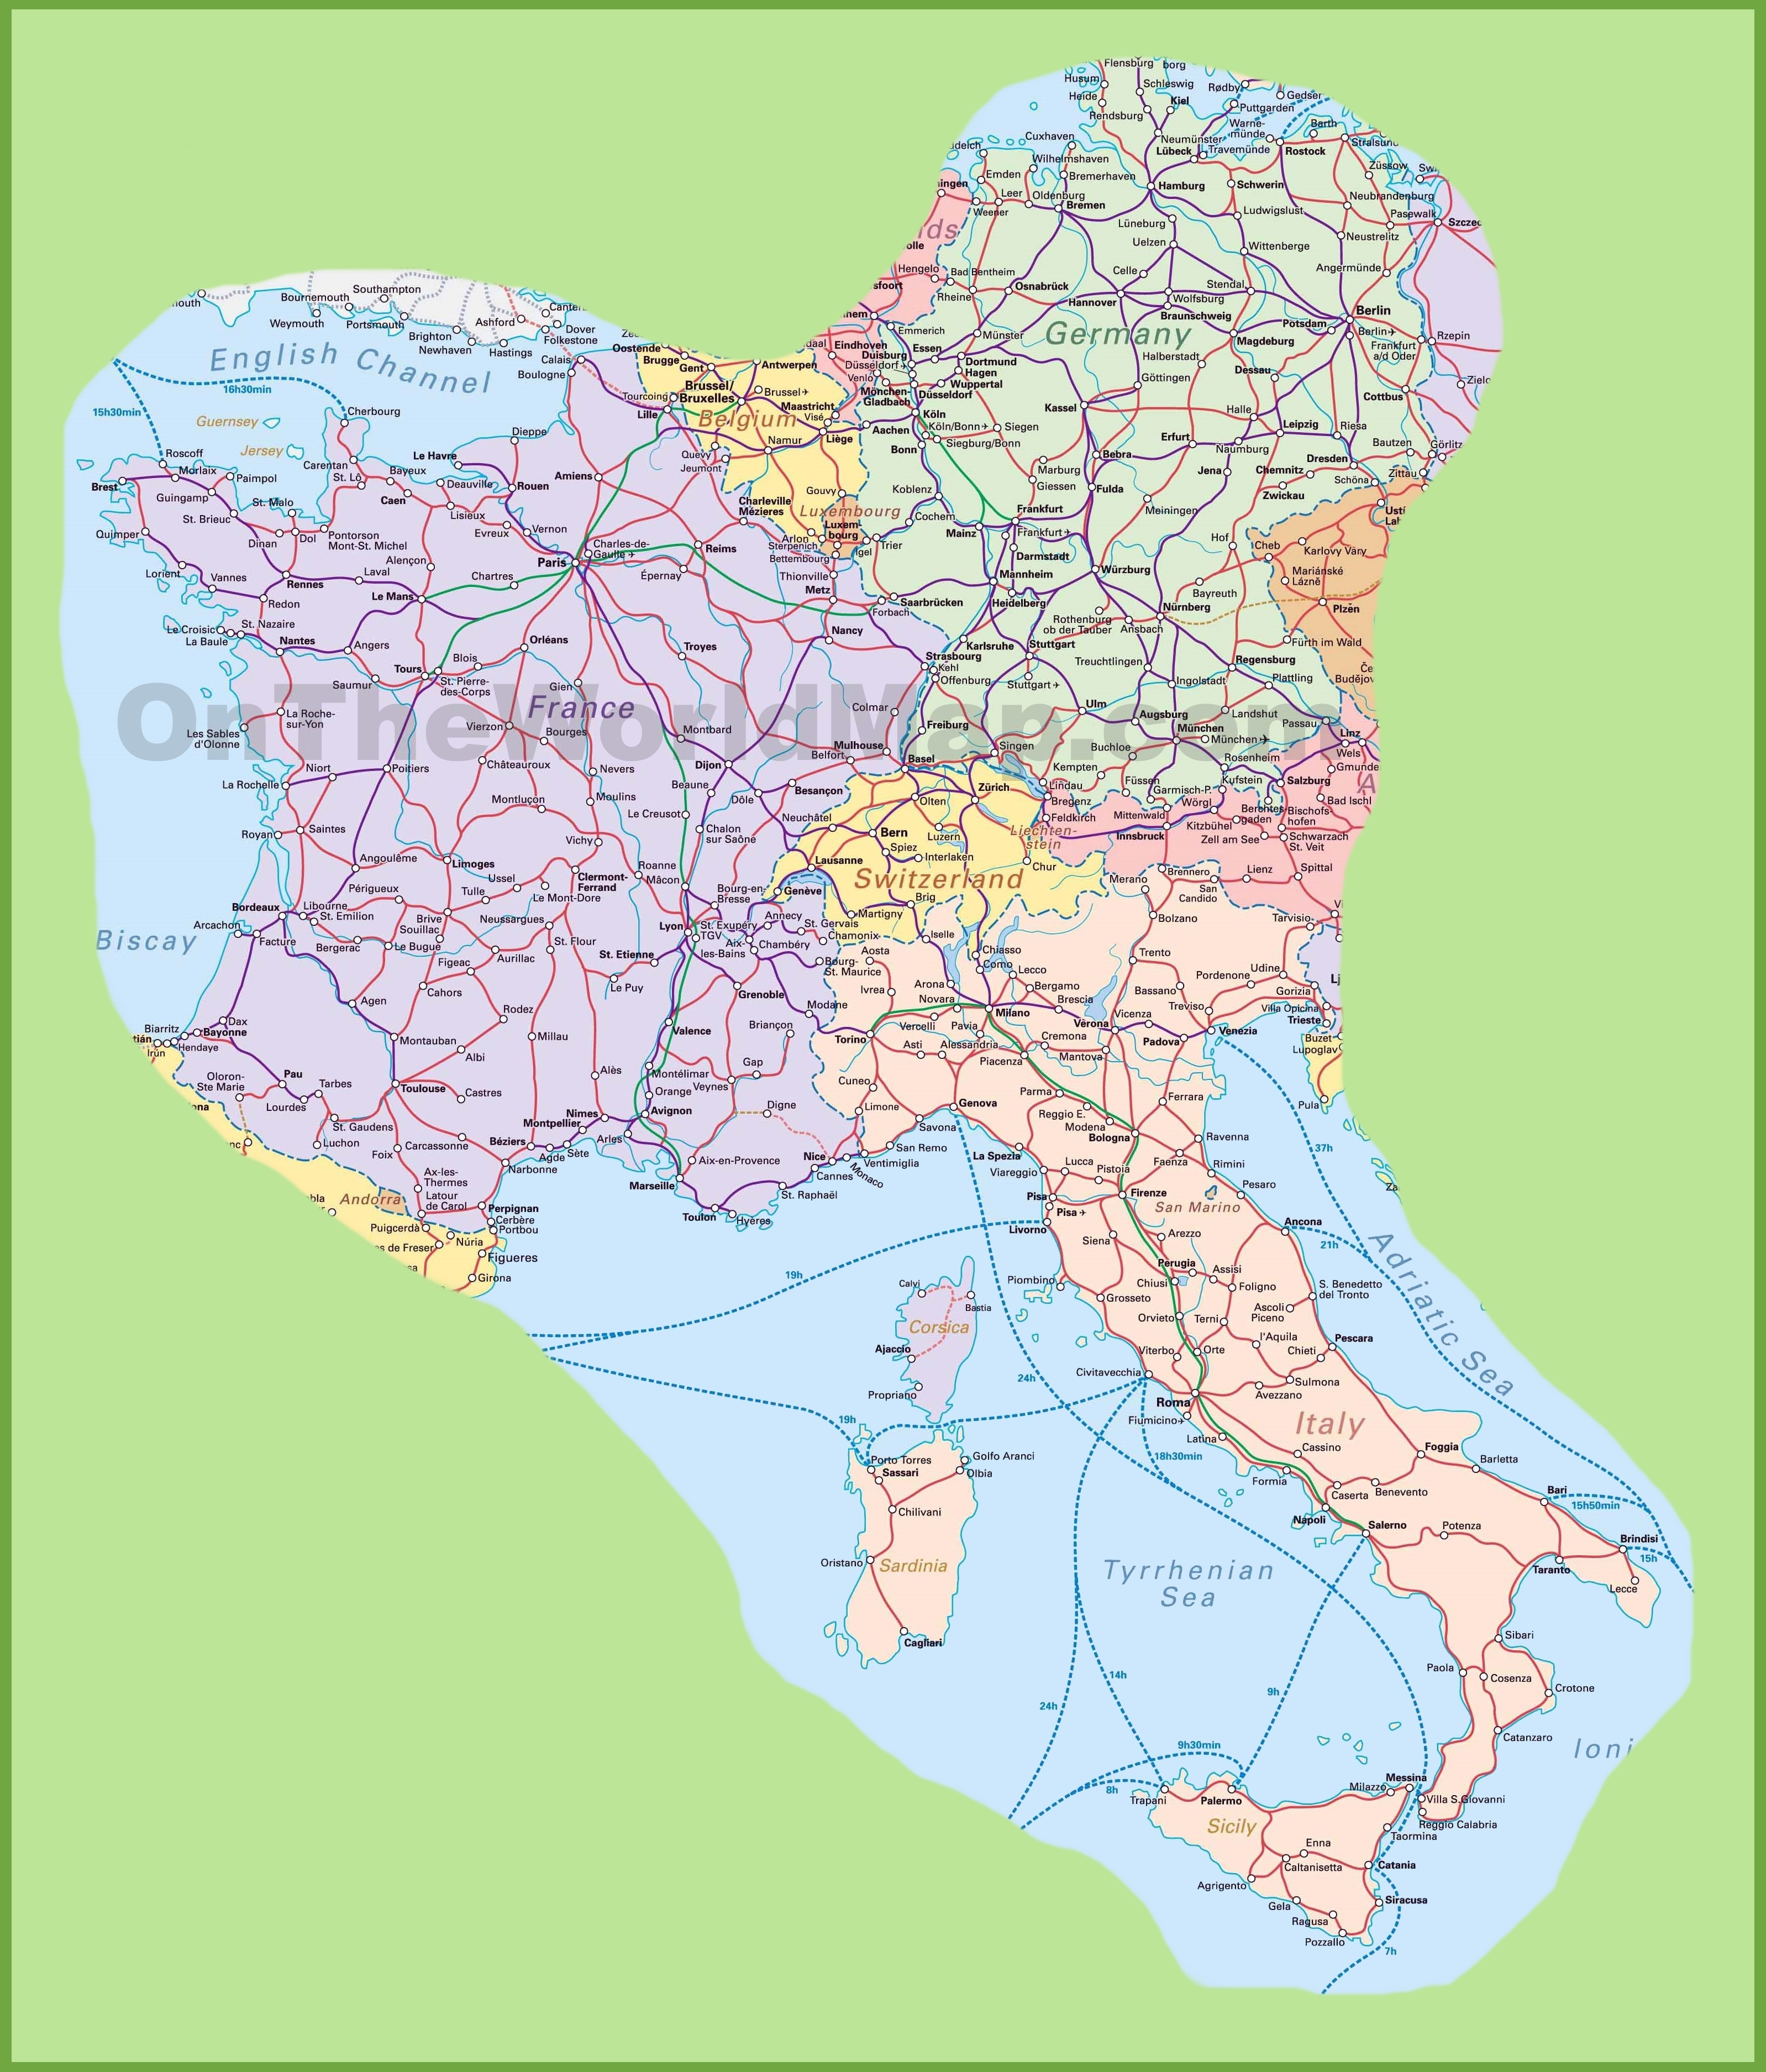 Map Of Switzerland, Italy, Germany And France within Map Of France Germany And Italy